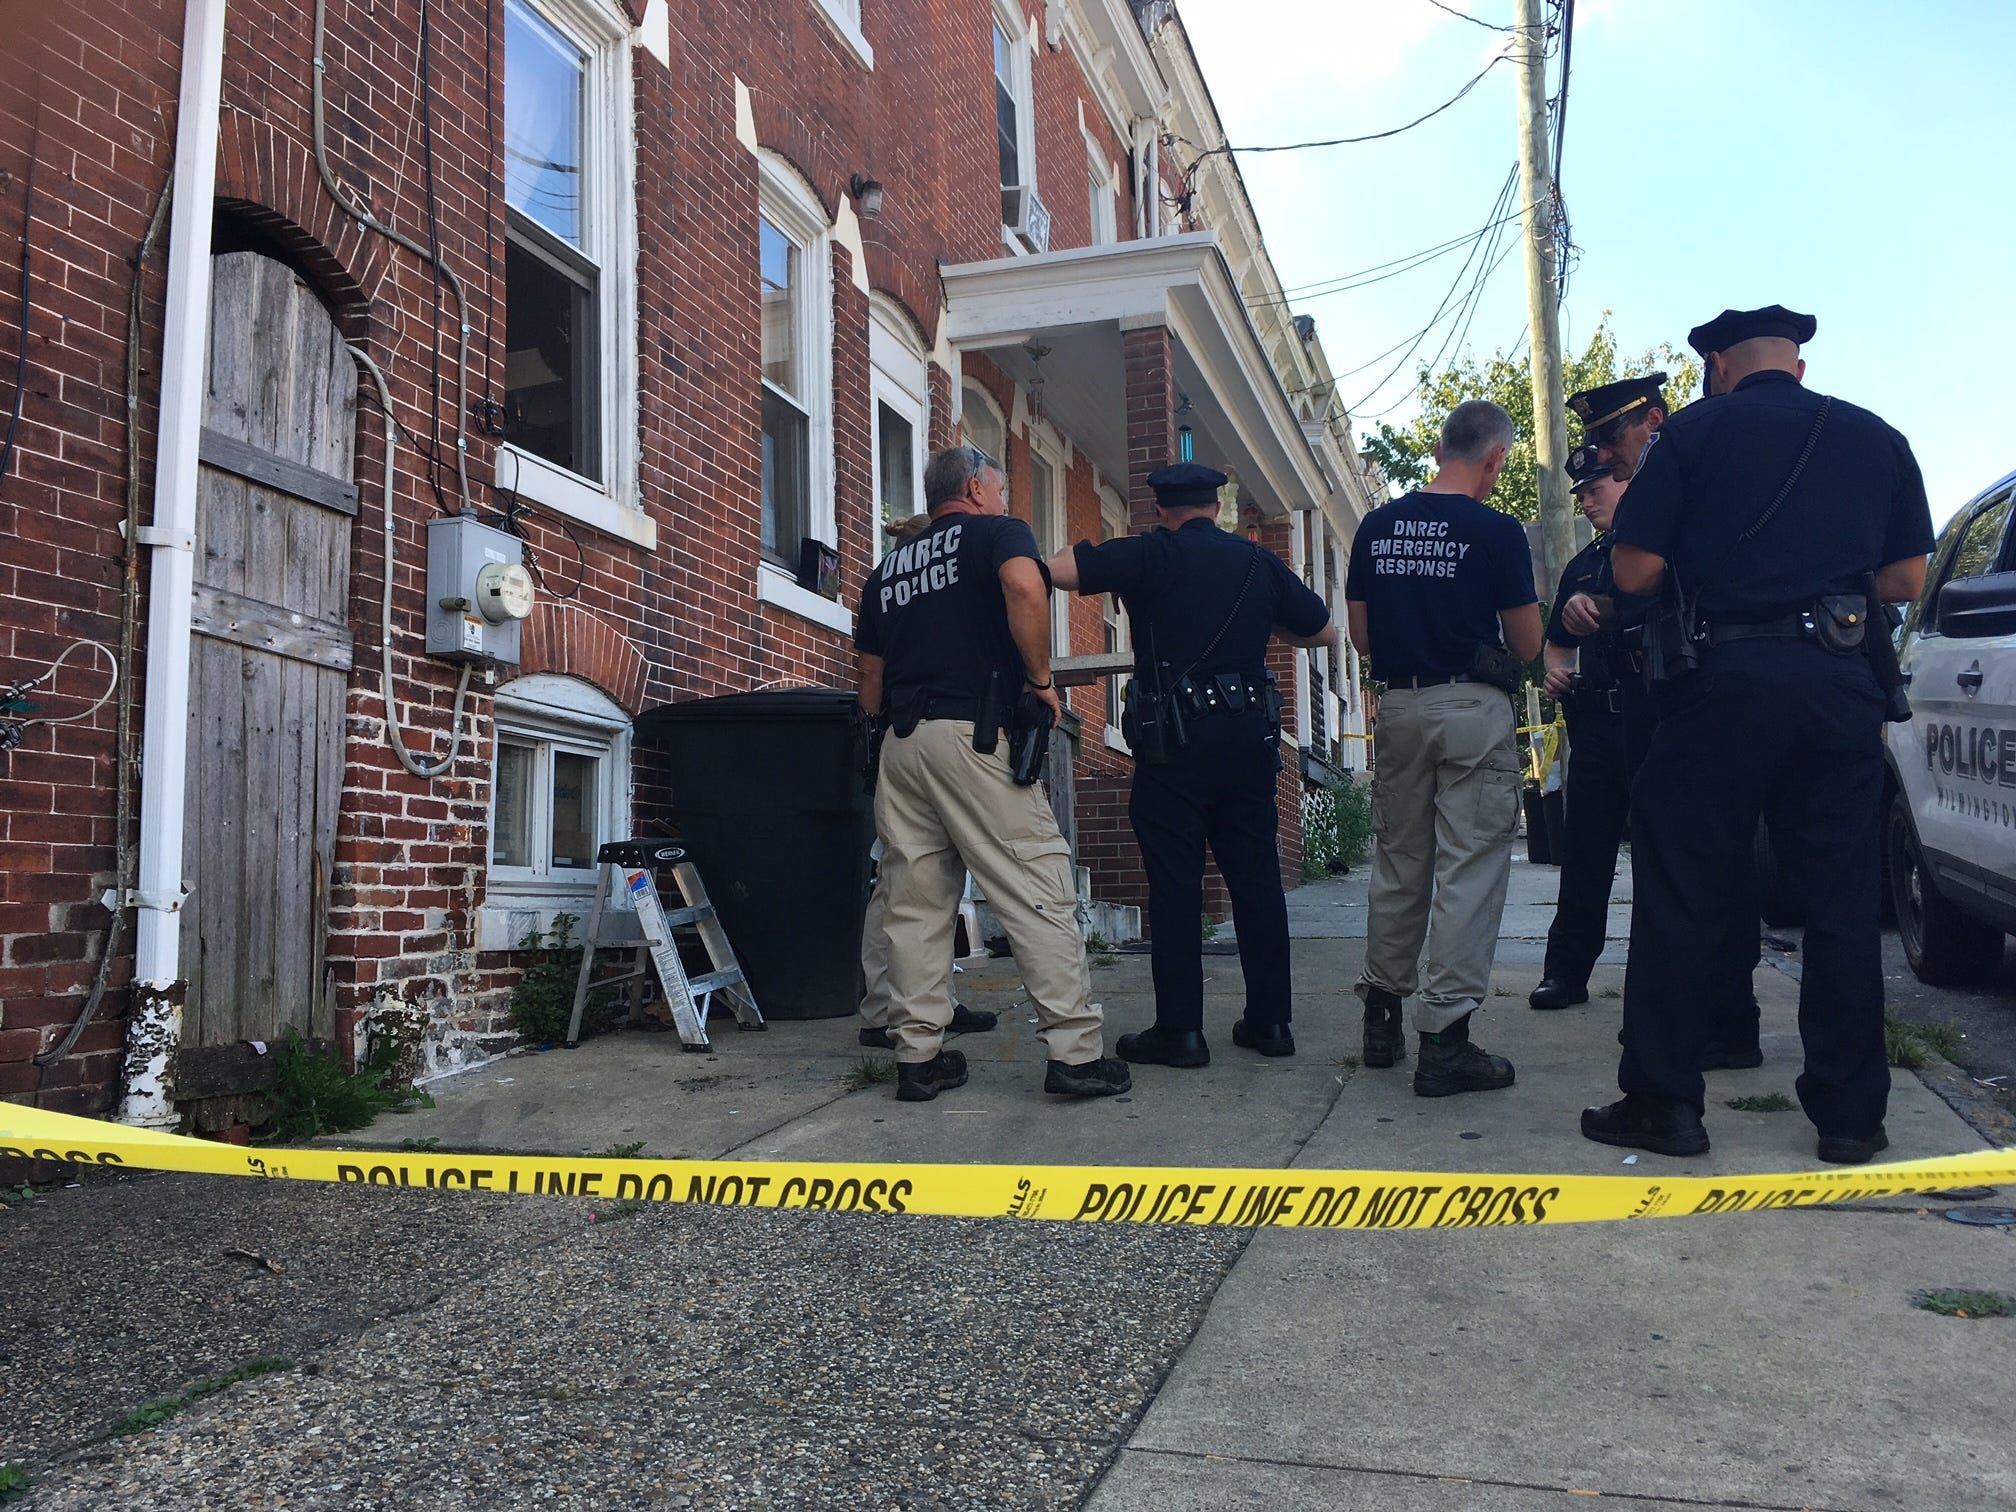 Seven Wilmington first responders receive accidental dose of fentanyl through misplace fan